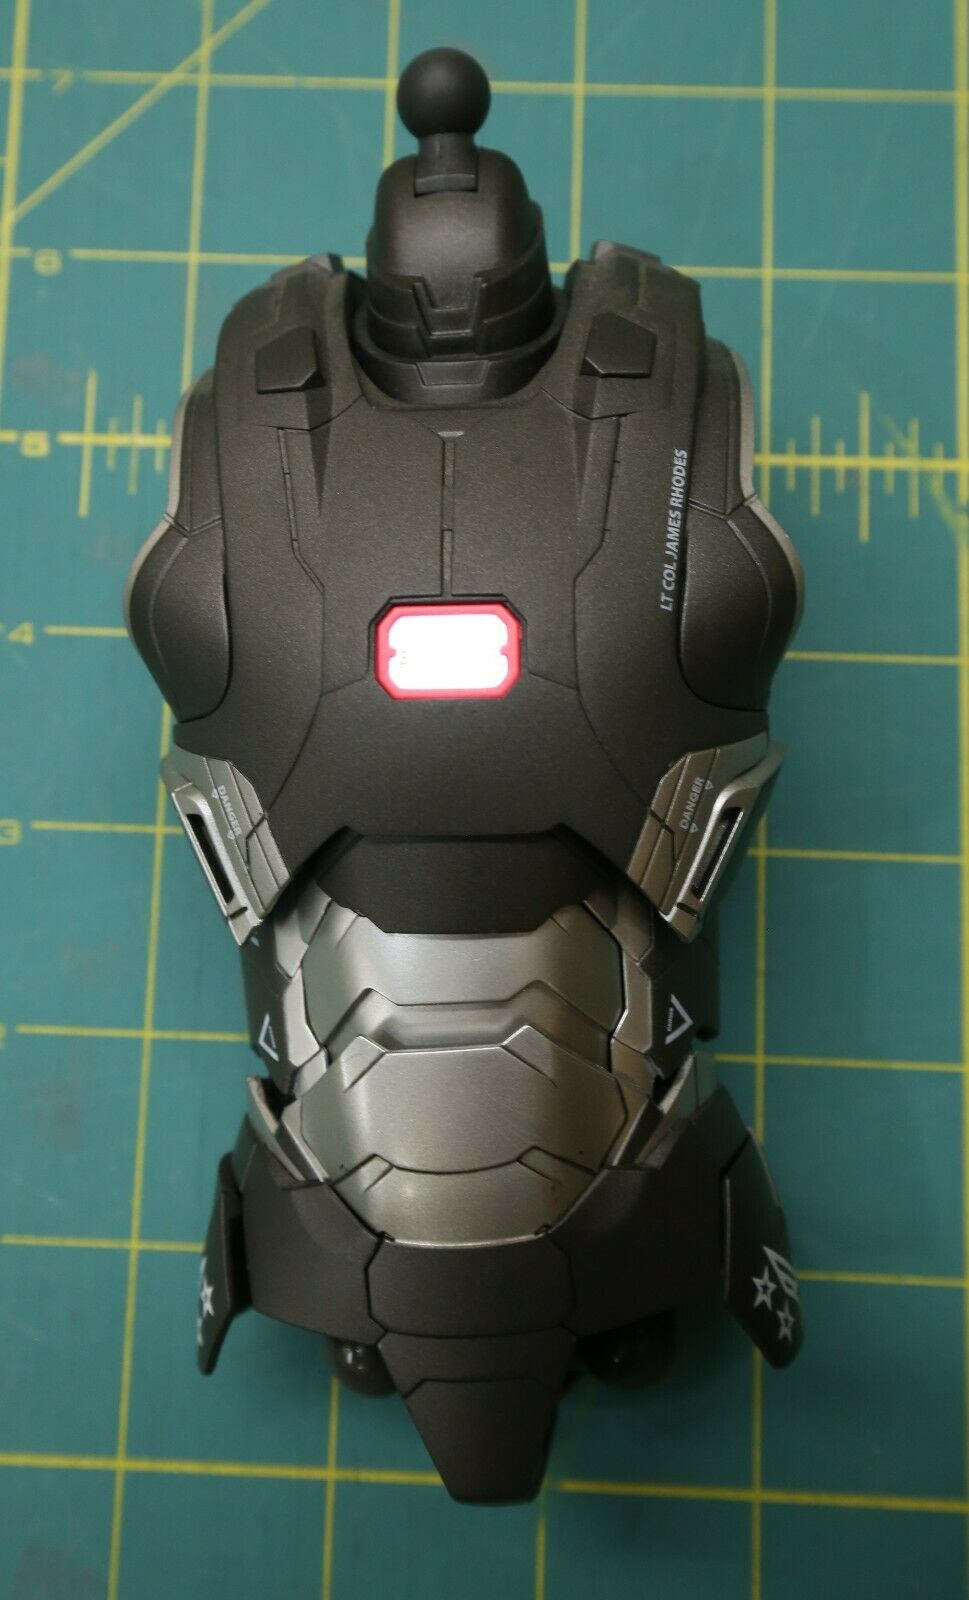 Hot Toys MMS198D03 War Machine Mark II Torso from Iron Man 3 Movie on eBay thumbnail